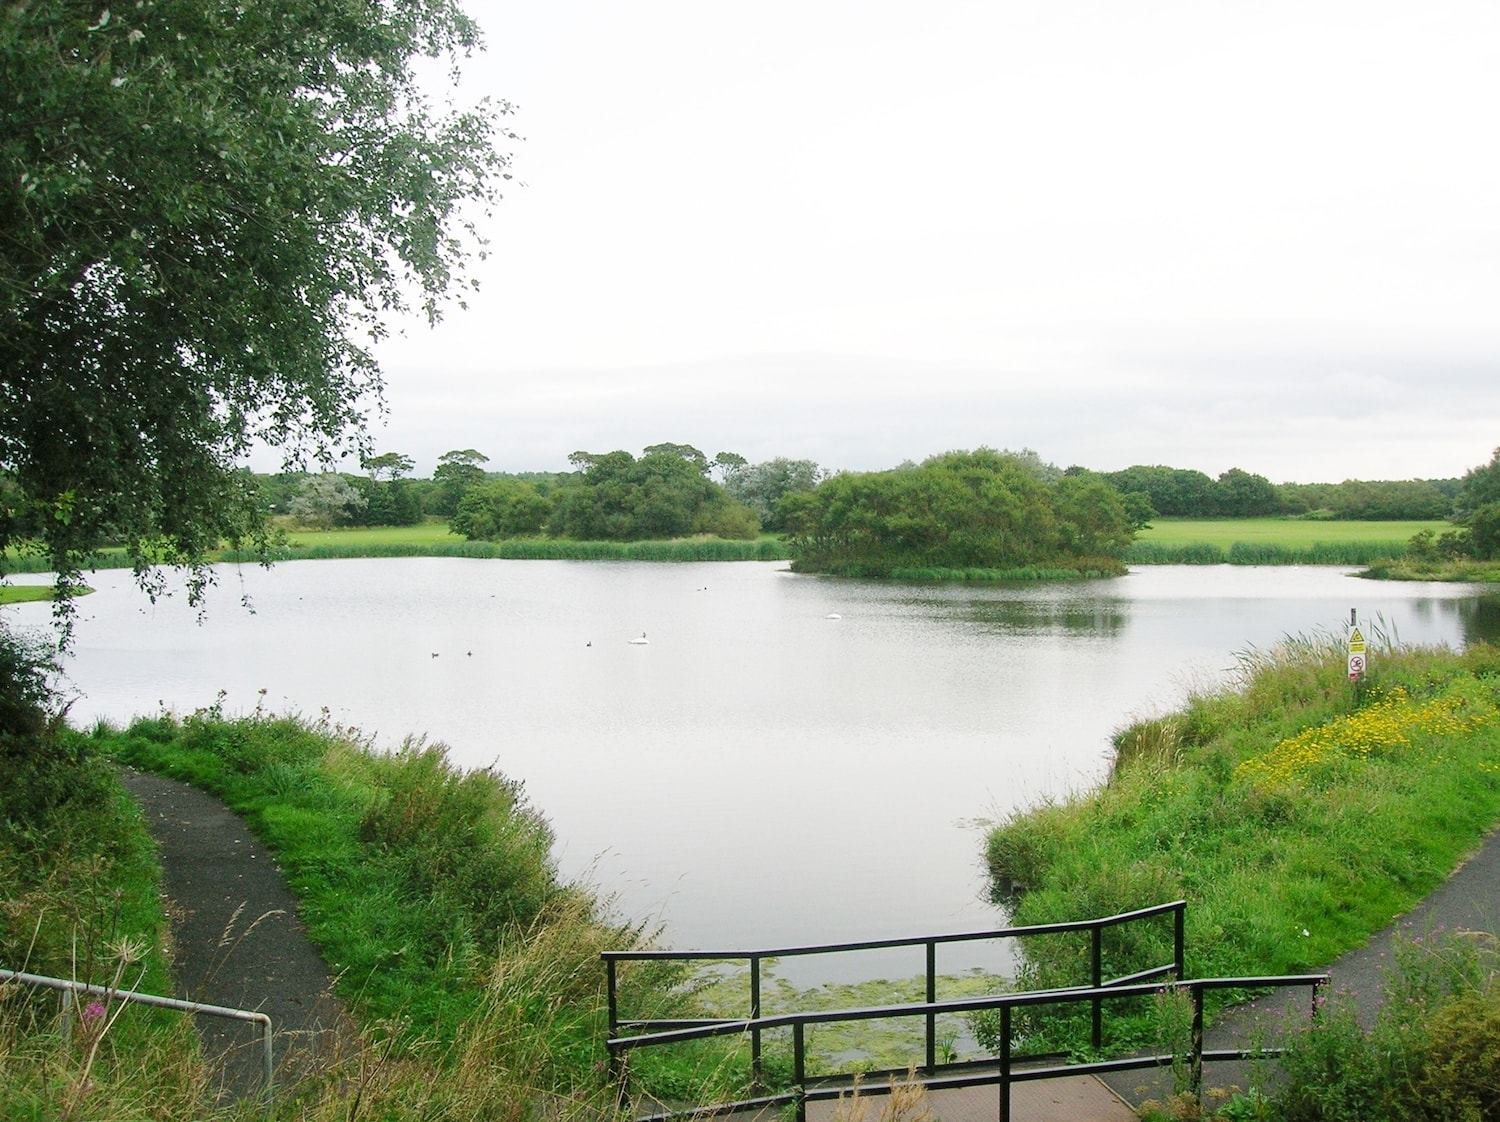 The pond at the site of Ardeer Quarry is now a haven for nature • Image source: Wikimedia Commons